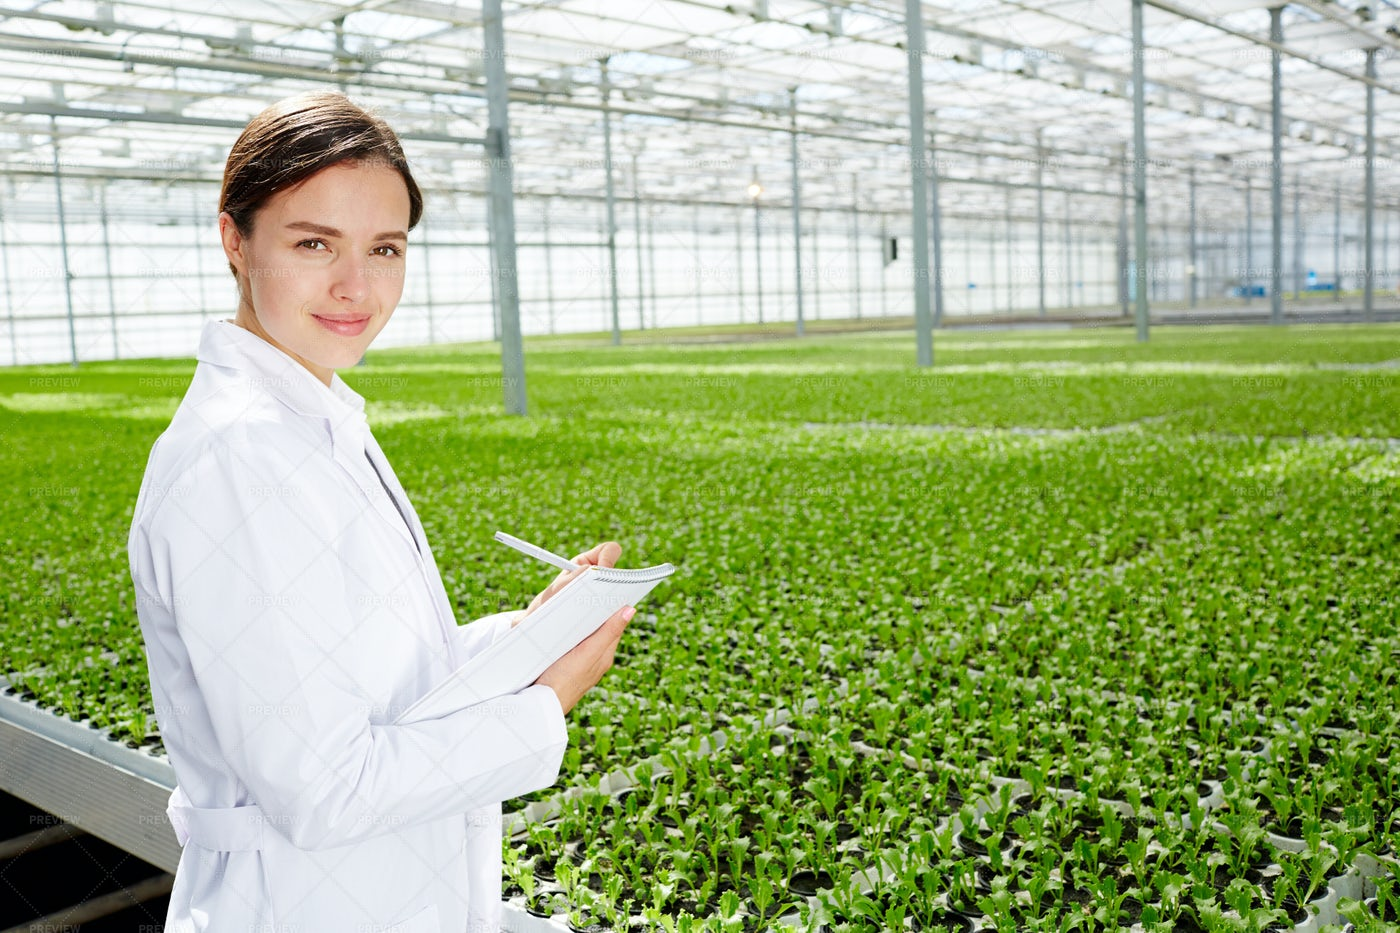 Agricultural Engineer At Work: Stock Photos